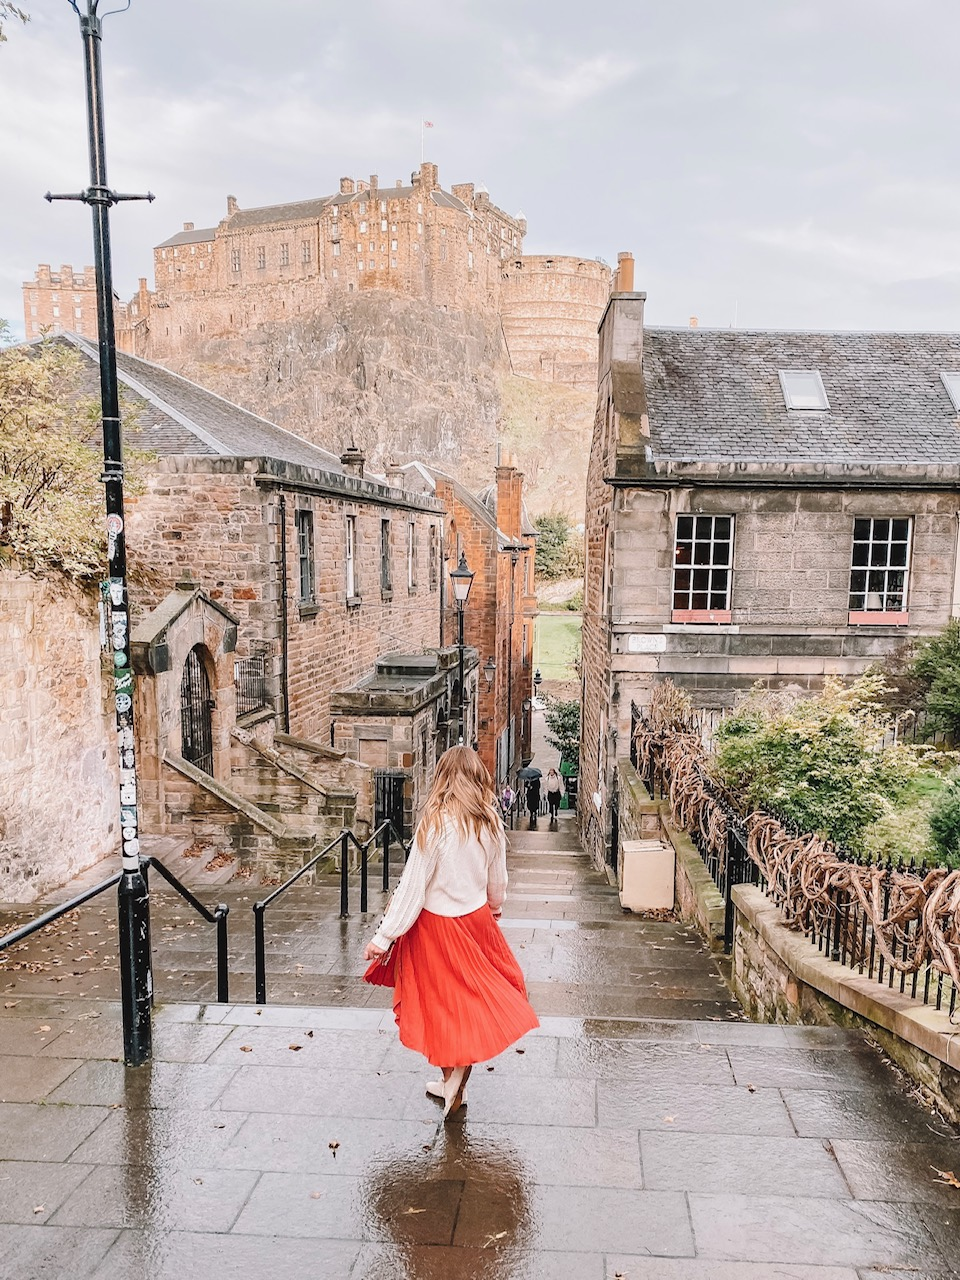 Travel blogger Amanda's OK shares her experience in Edinburgh, Scotland